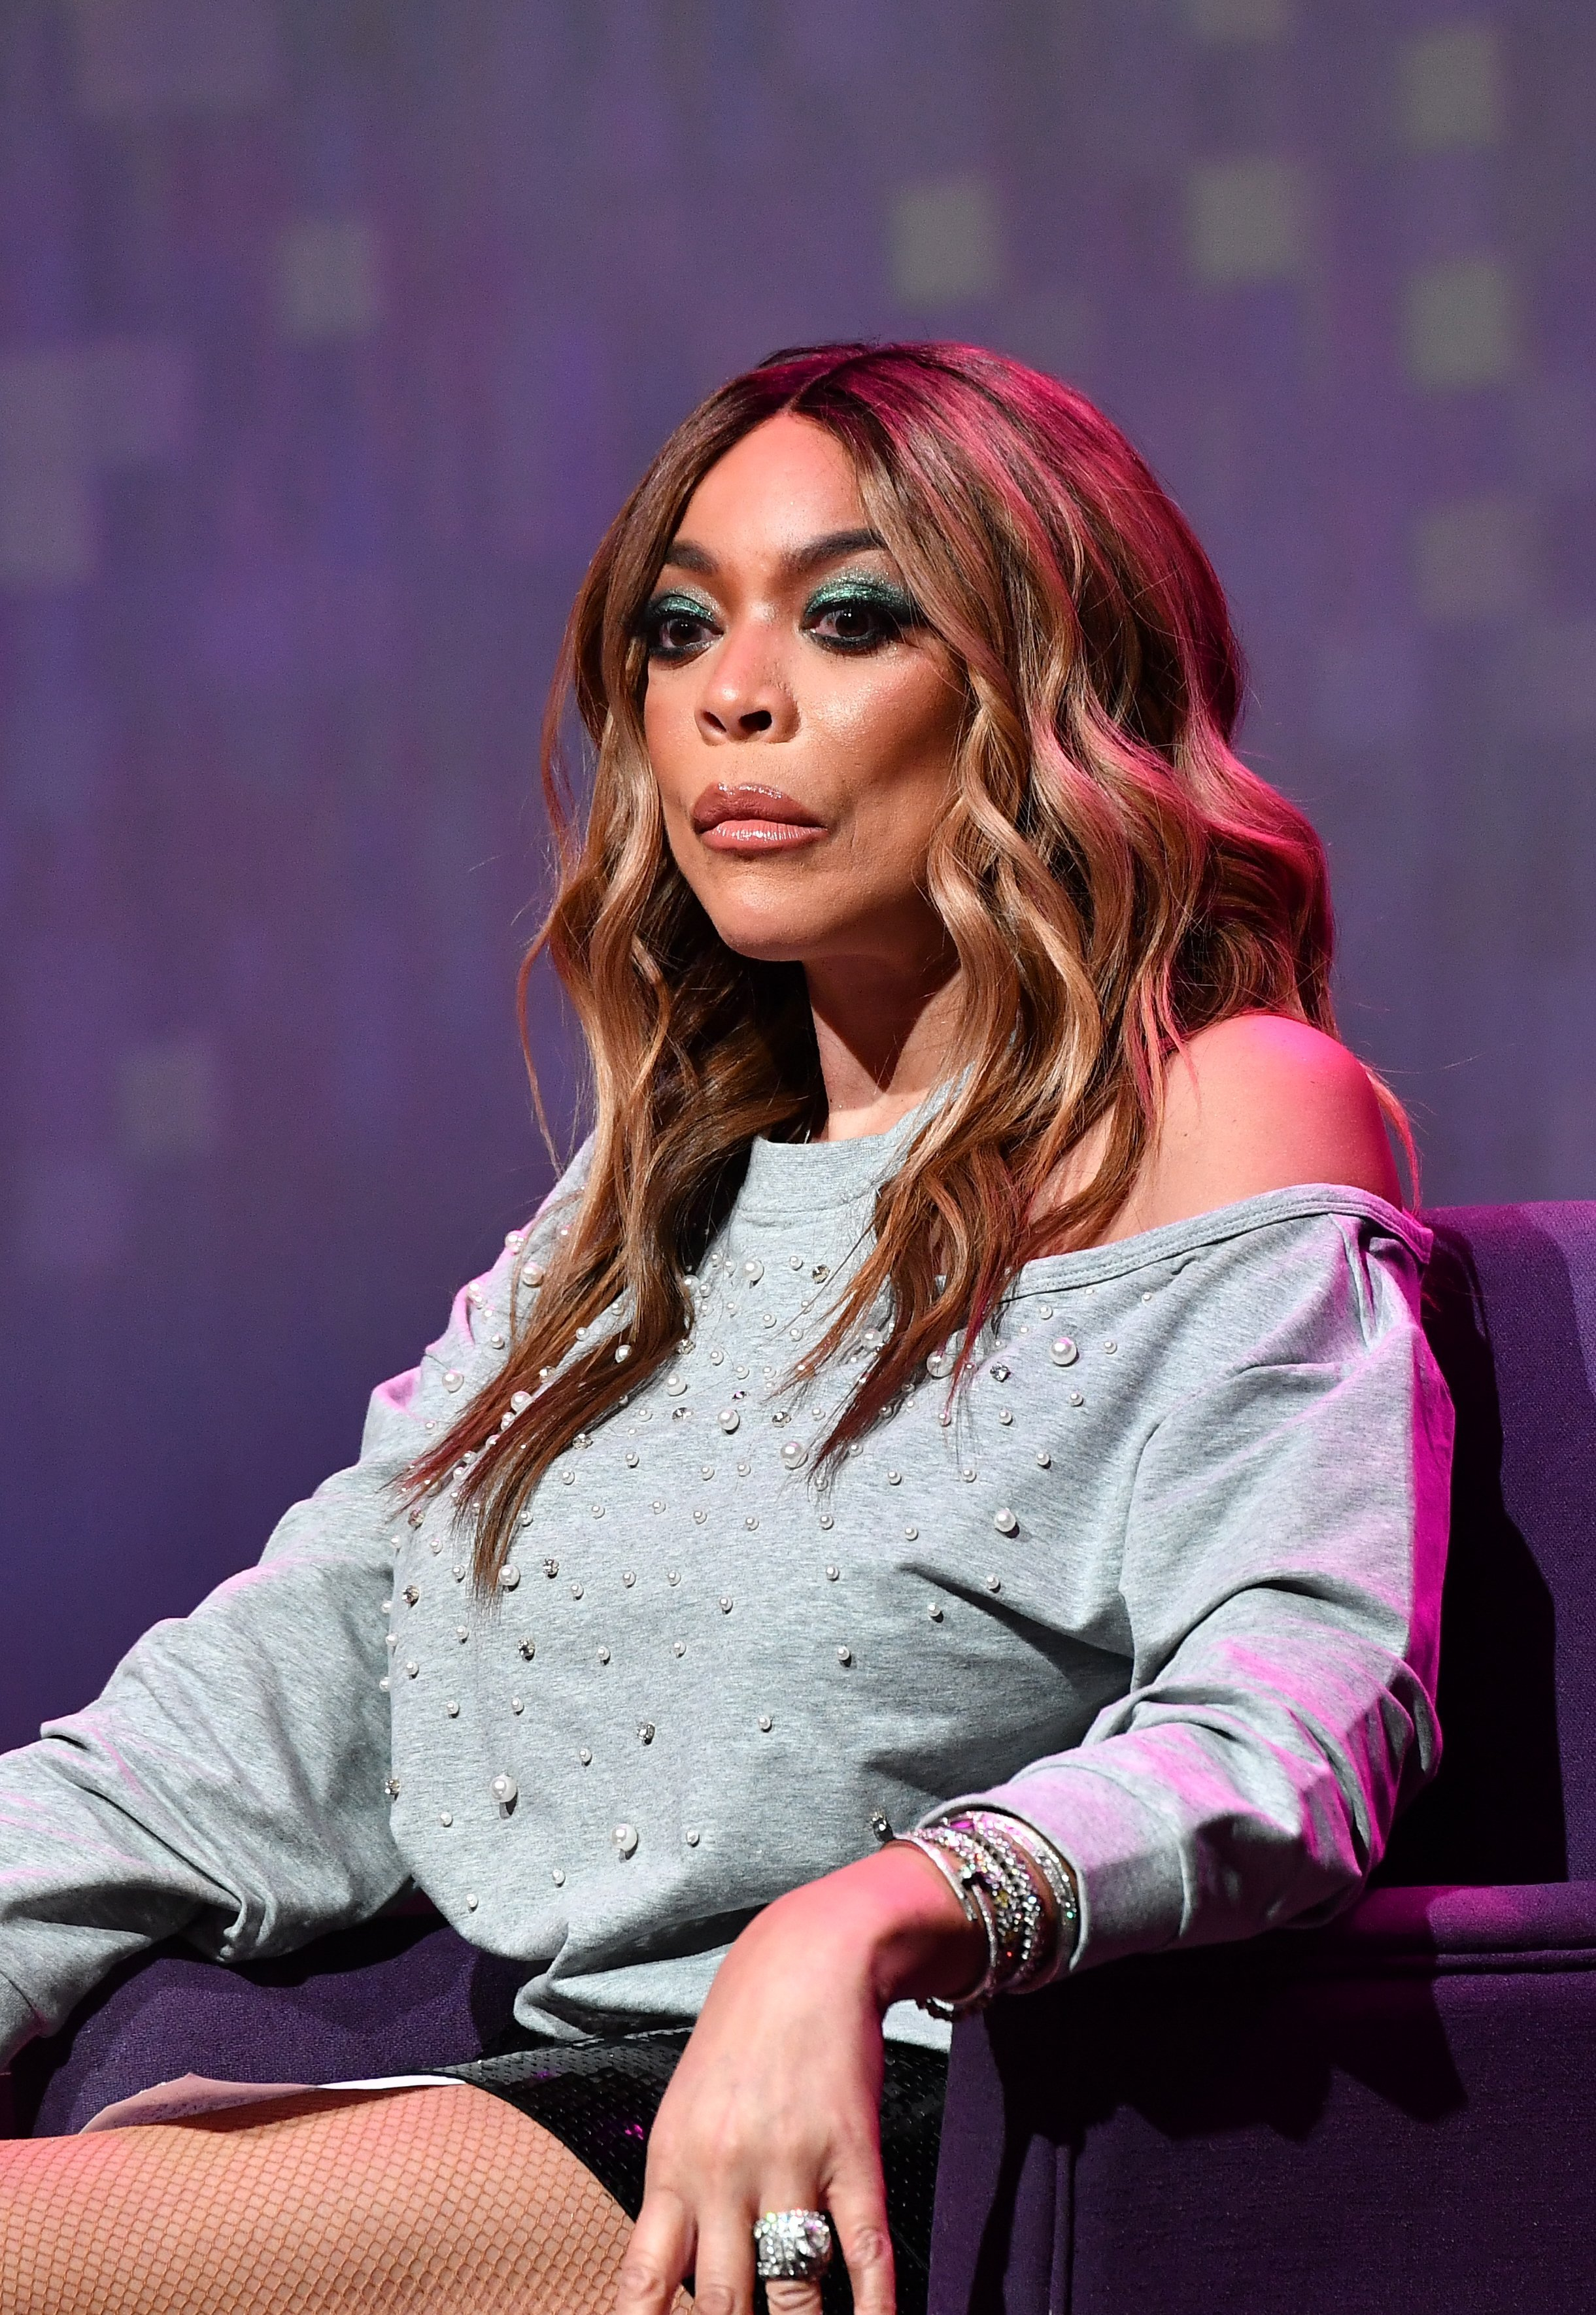 Wendy Williams at the celebration of 10 years of 'The Wendy Williams Show' on Aug. 16, 2018 in Atlanta, Georgia | Photo: Getty Images